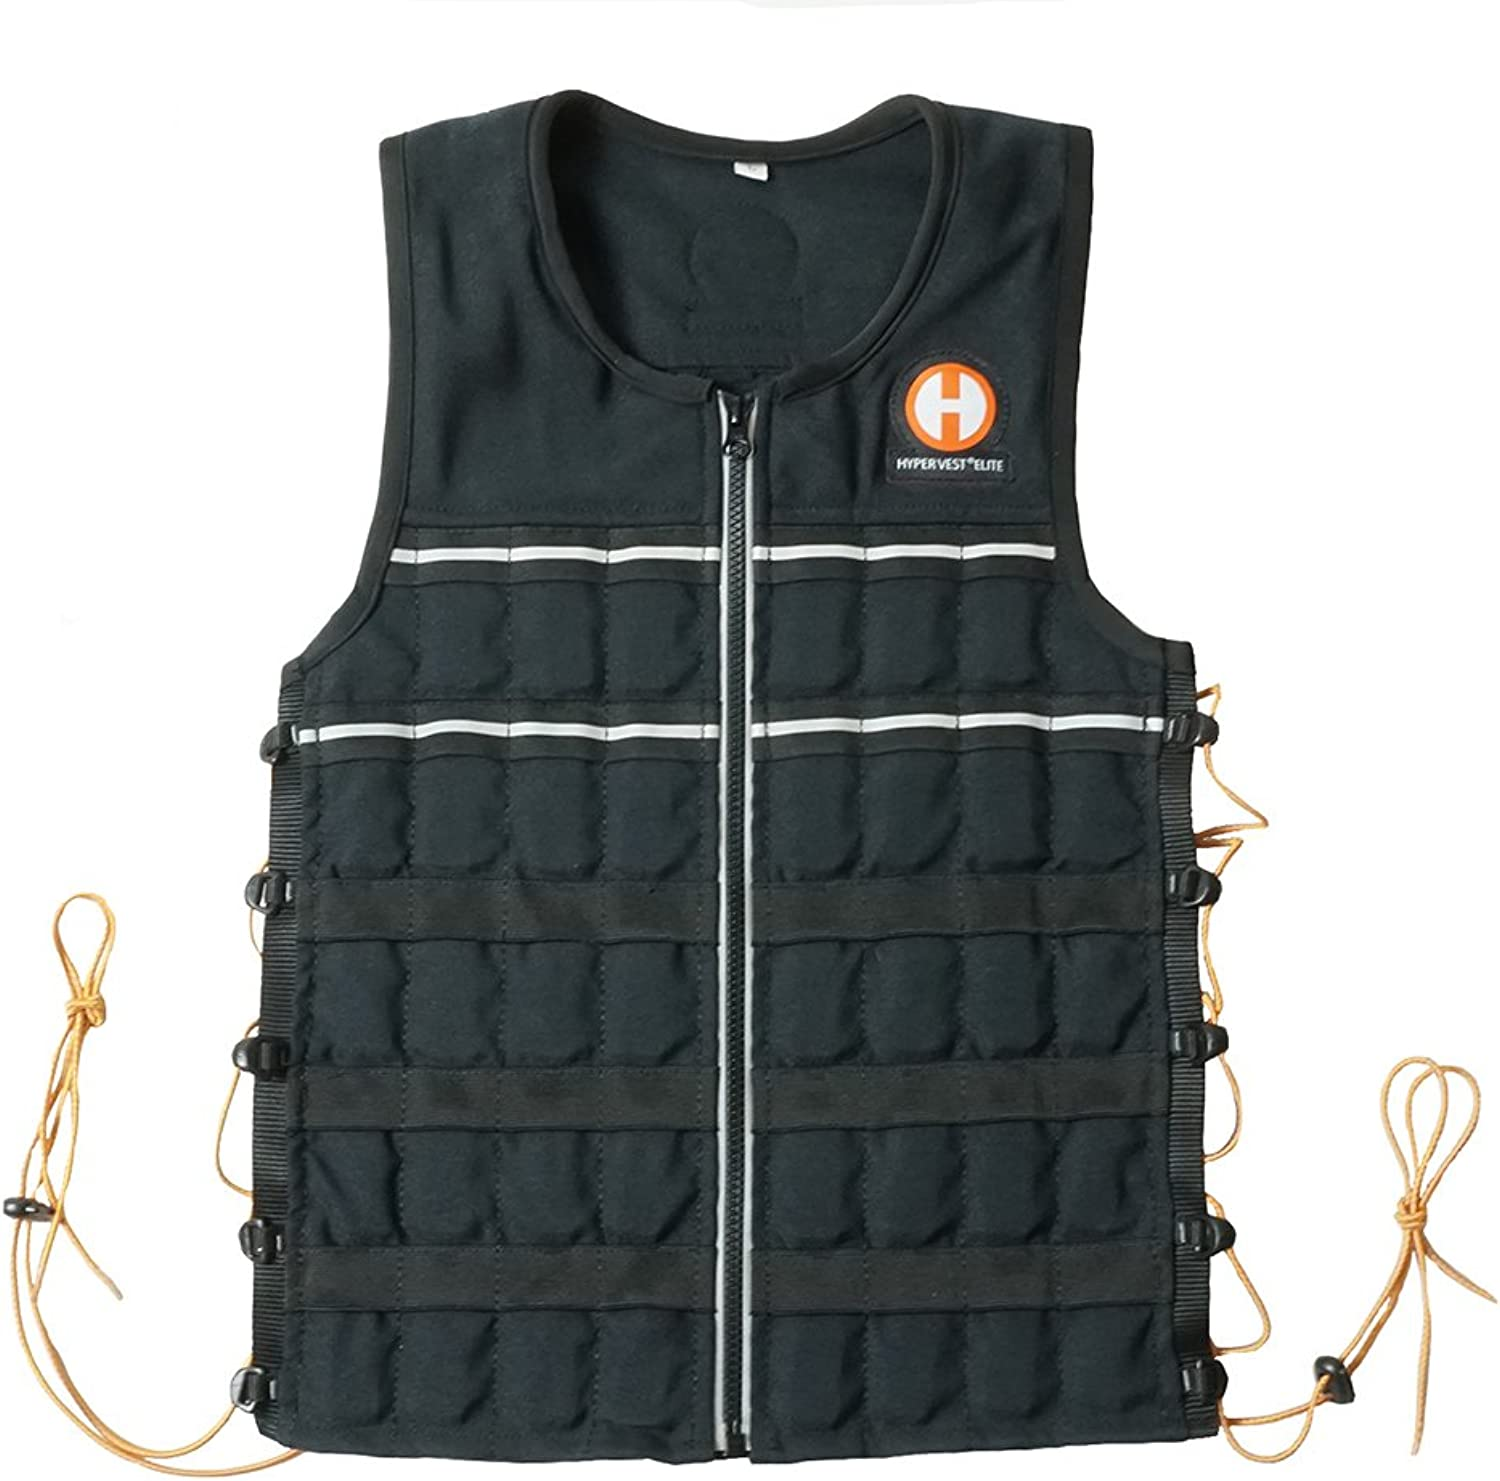 Hyperwear Hyper Vest Elite 15lbs 20lbs max Weight Comfortable Adjustable Weighted Vest for Men or Women with Durable Cordura Fabric, Reflective Trim, and Shock Cord Side Lacing